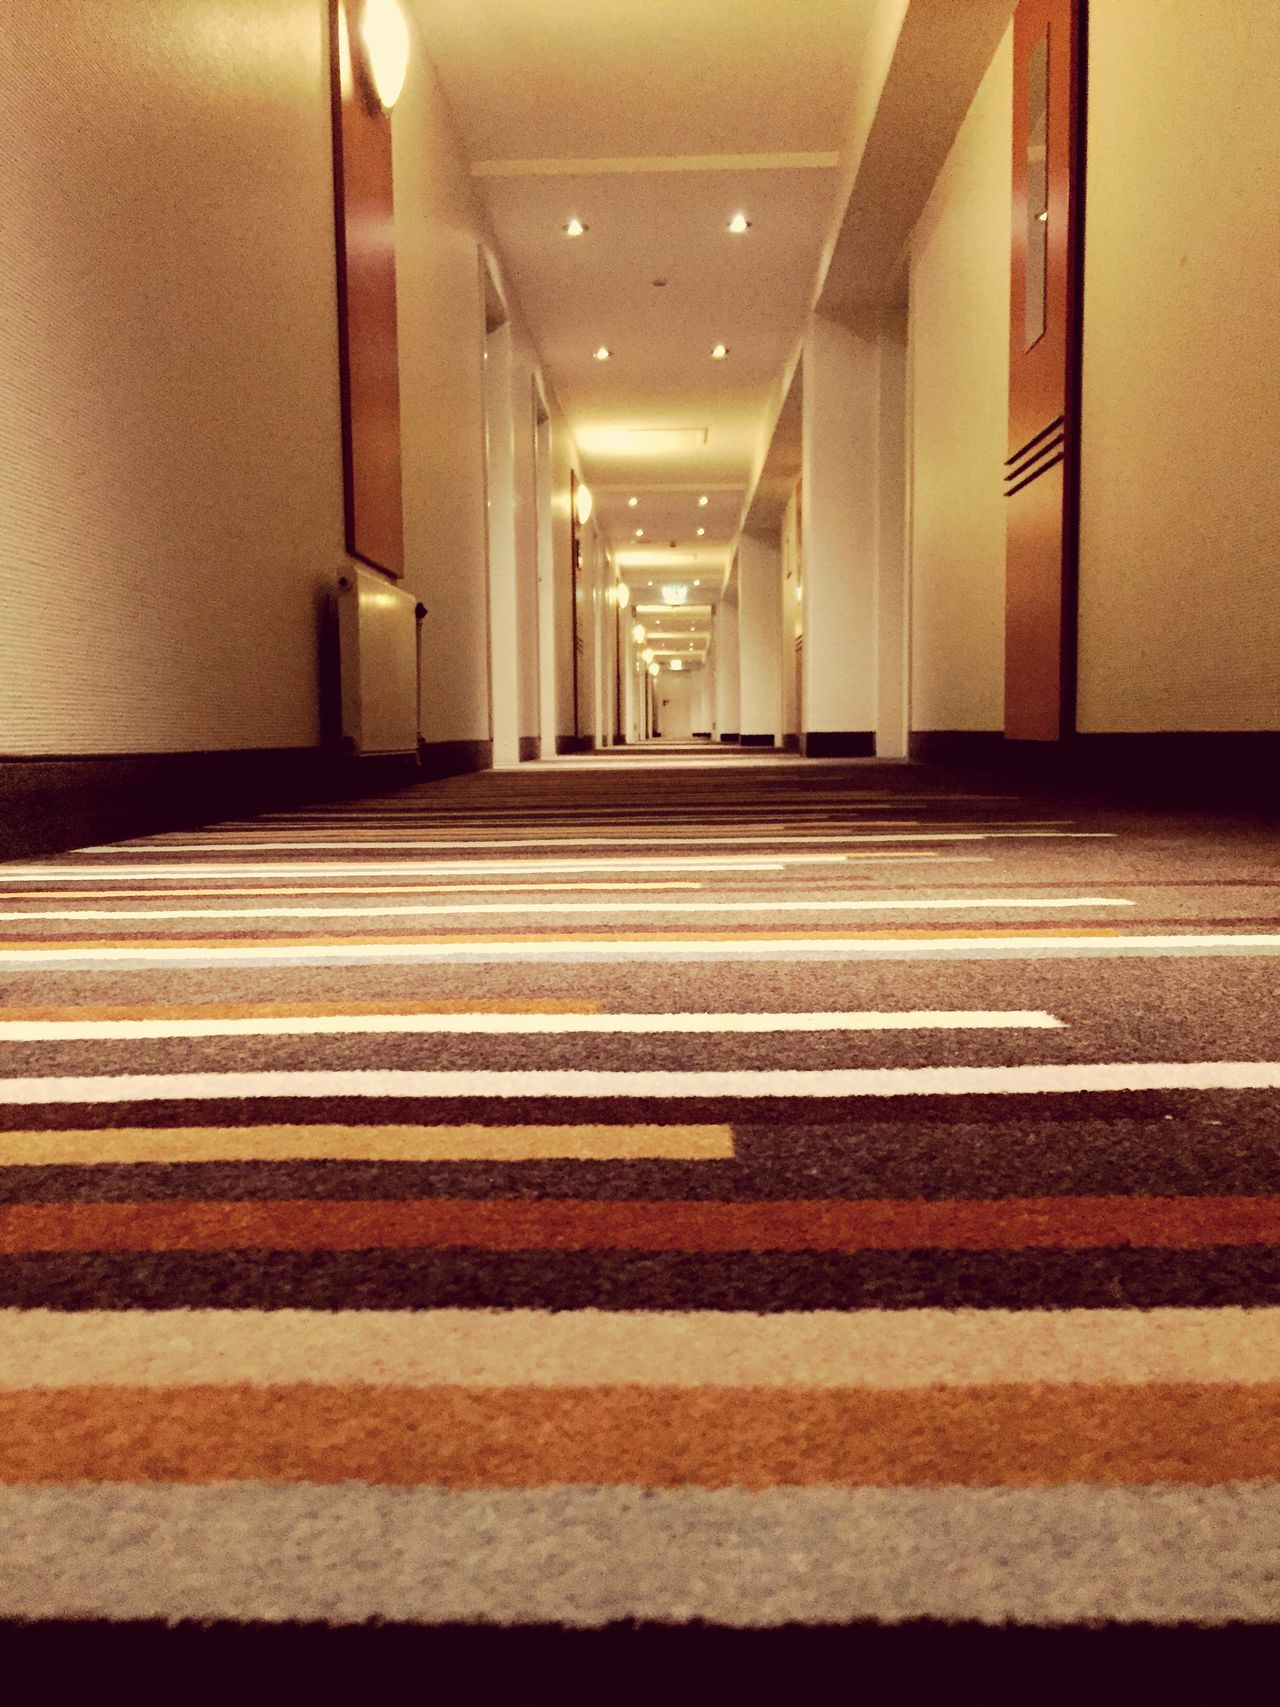 Backgrounds Carpet Indoors  Architecture No People Hotel Doors Colors Perspective Architecture Indoors  Goodnight Stripes Pattern Lookingup Lights Stripes Everywhere